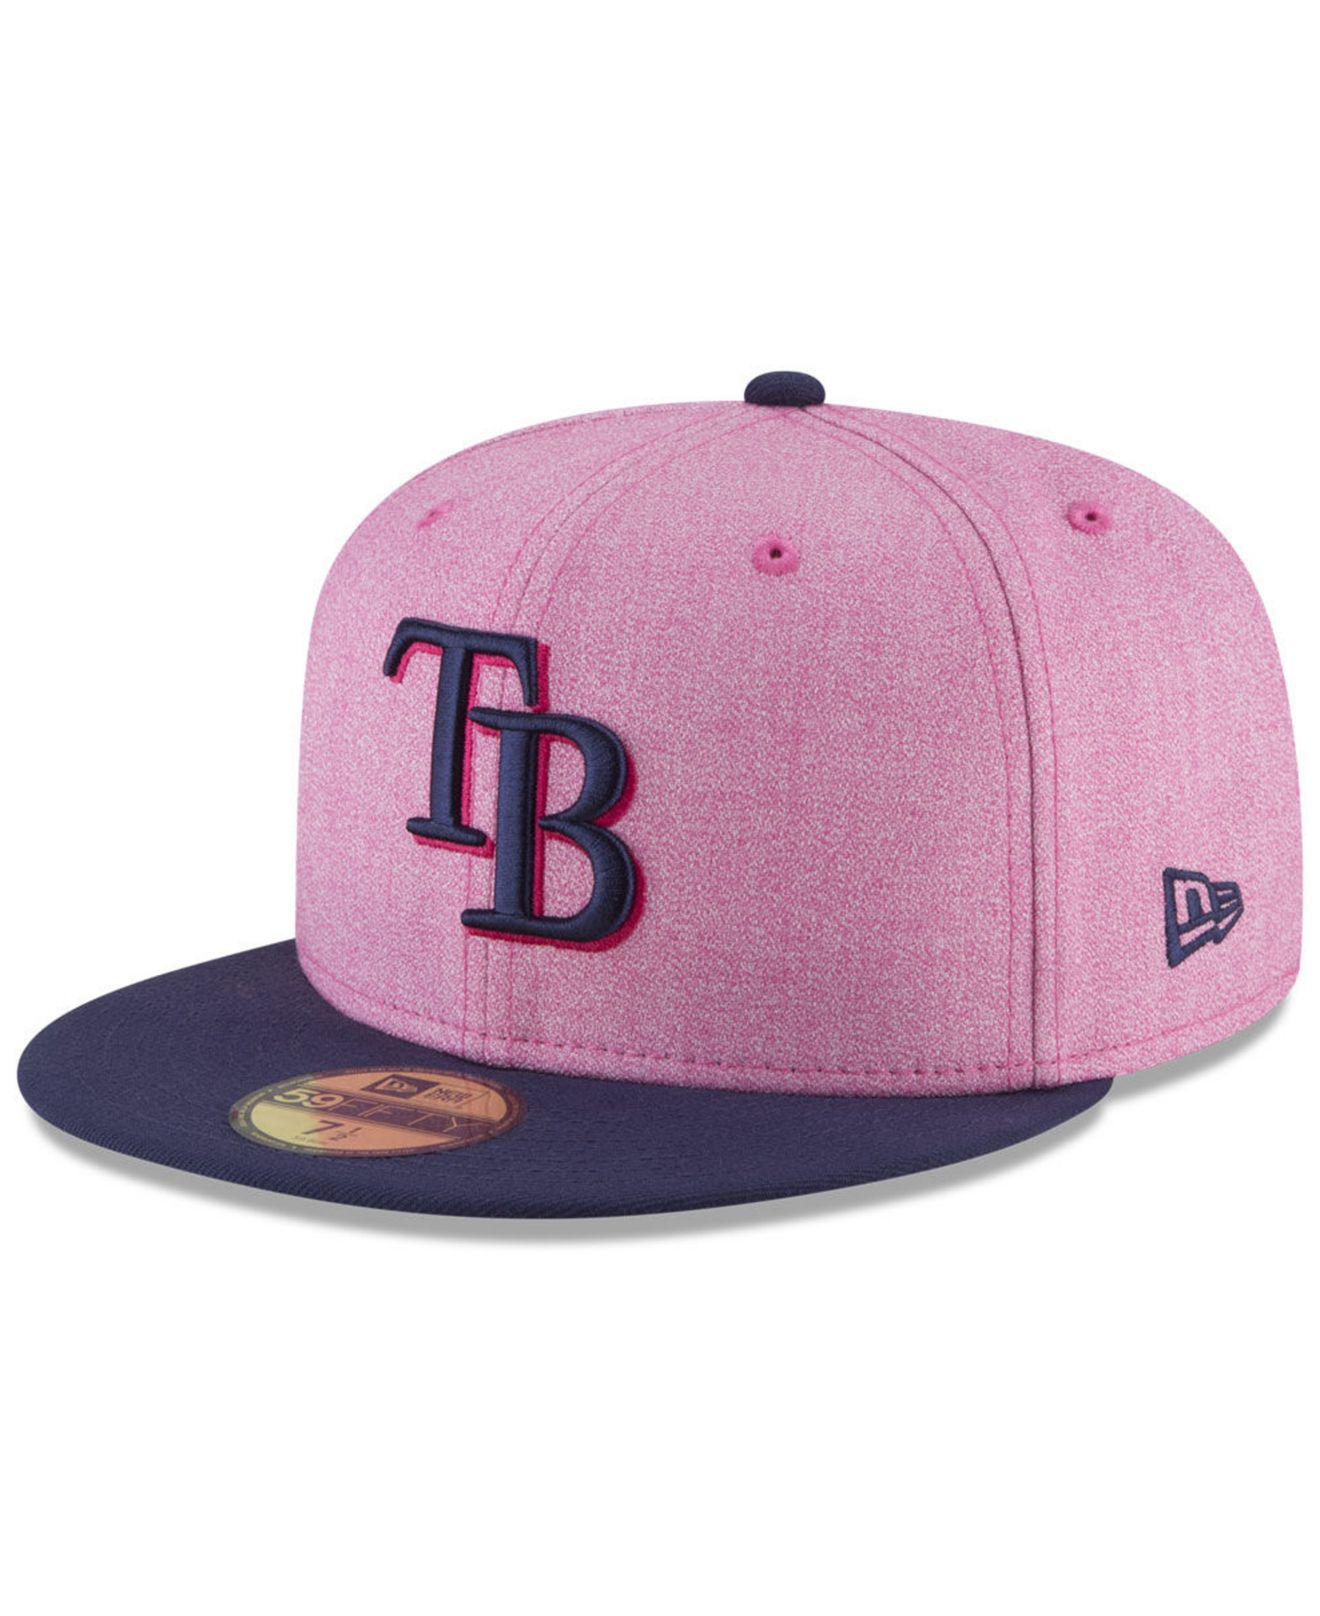 reputable site 82dc6 a8007 Lyst - KTZ Tampa Bay Rays Mothers Day 59fifty Fitted Cap in Pink